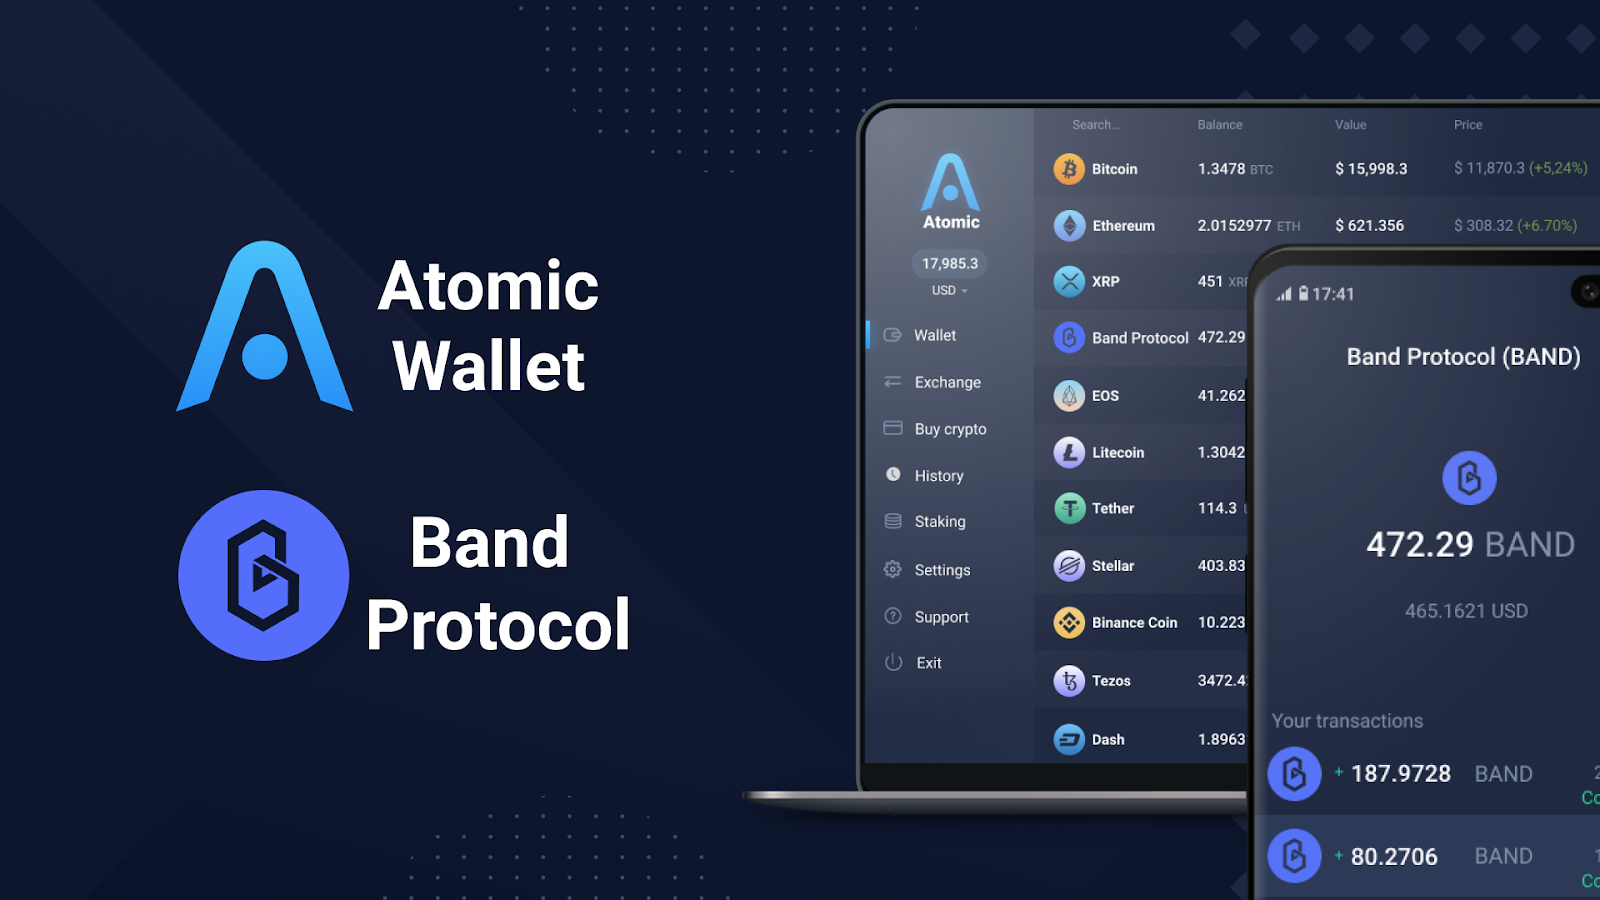 band protocol staking